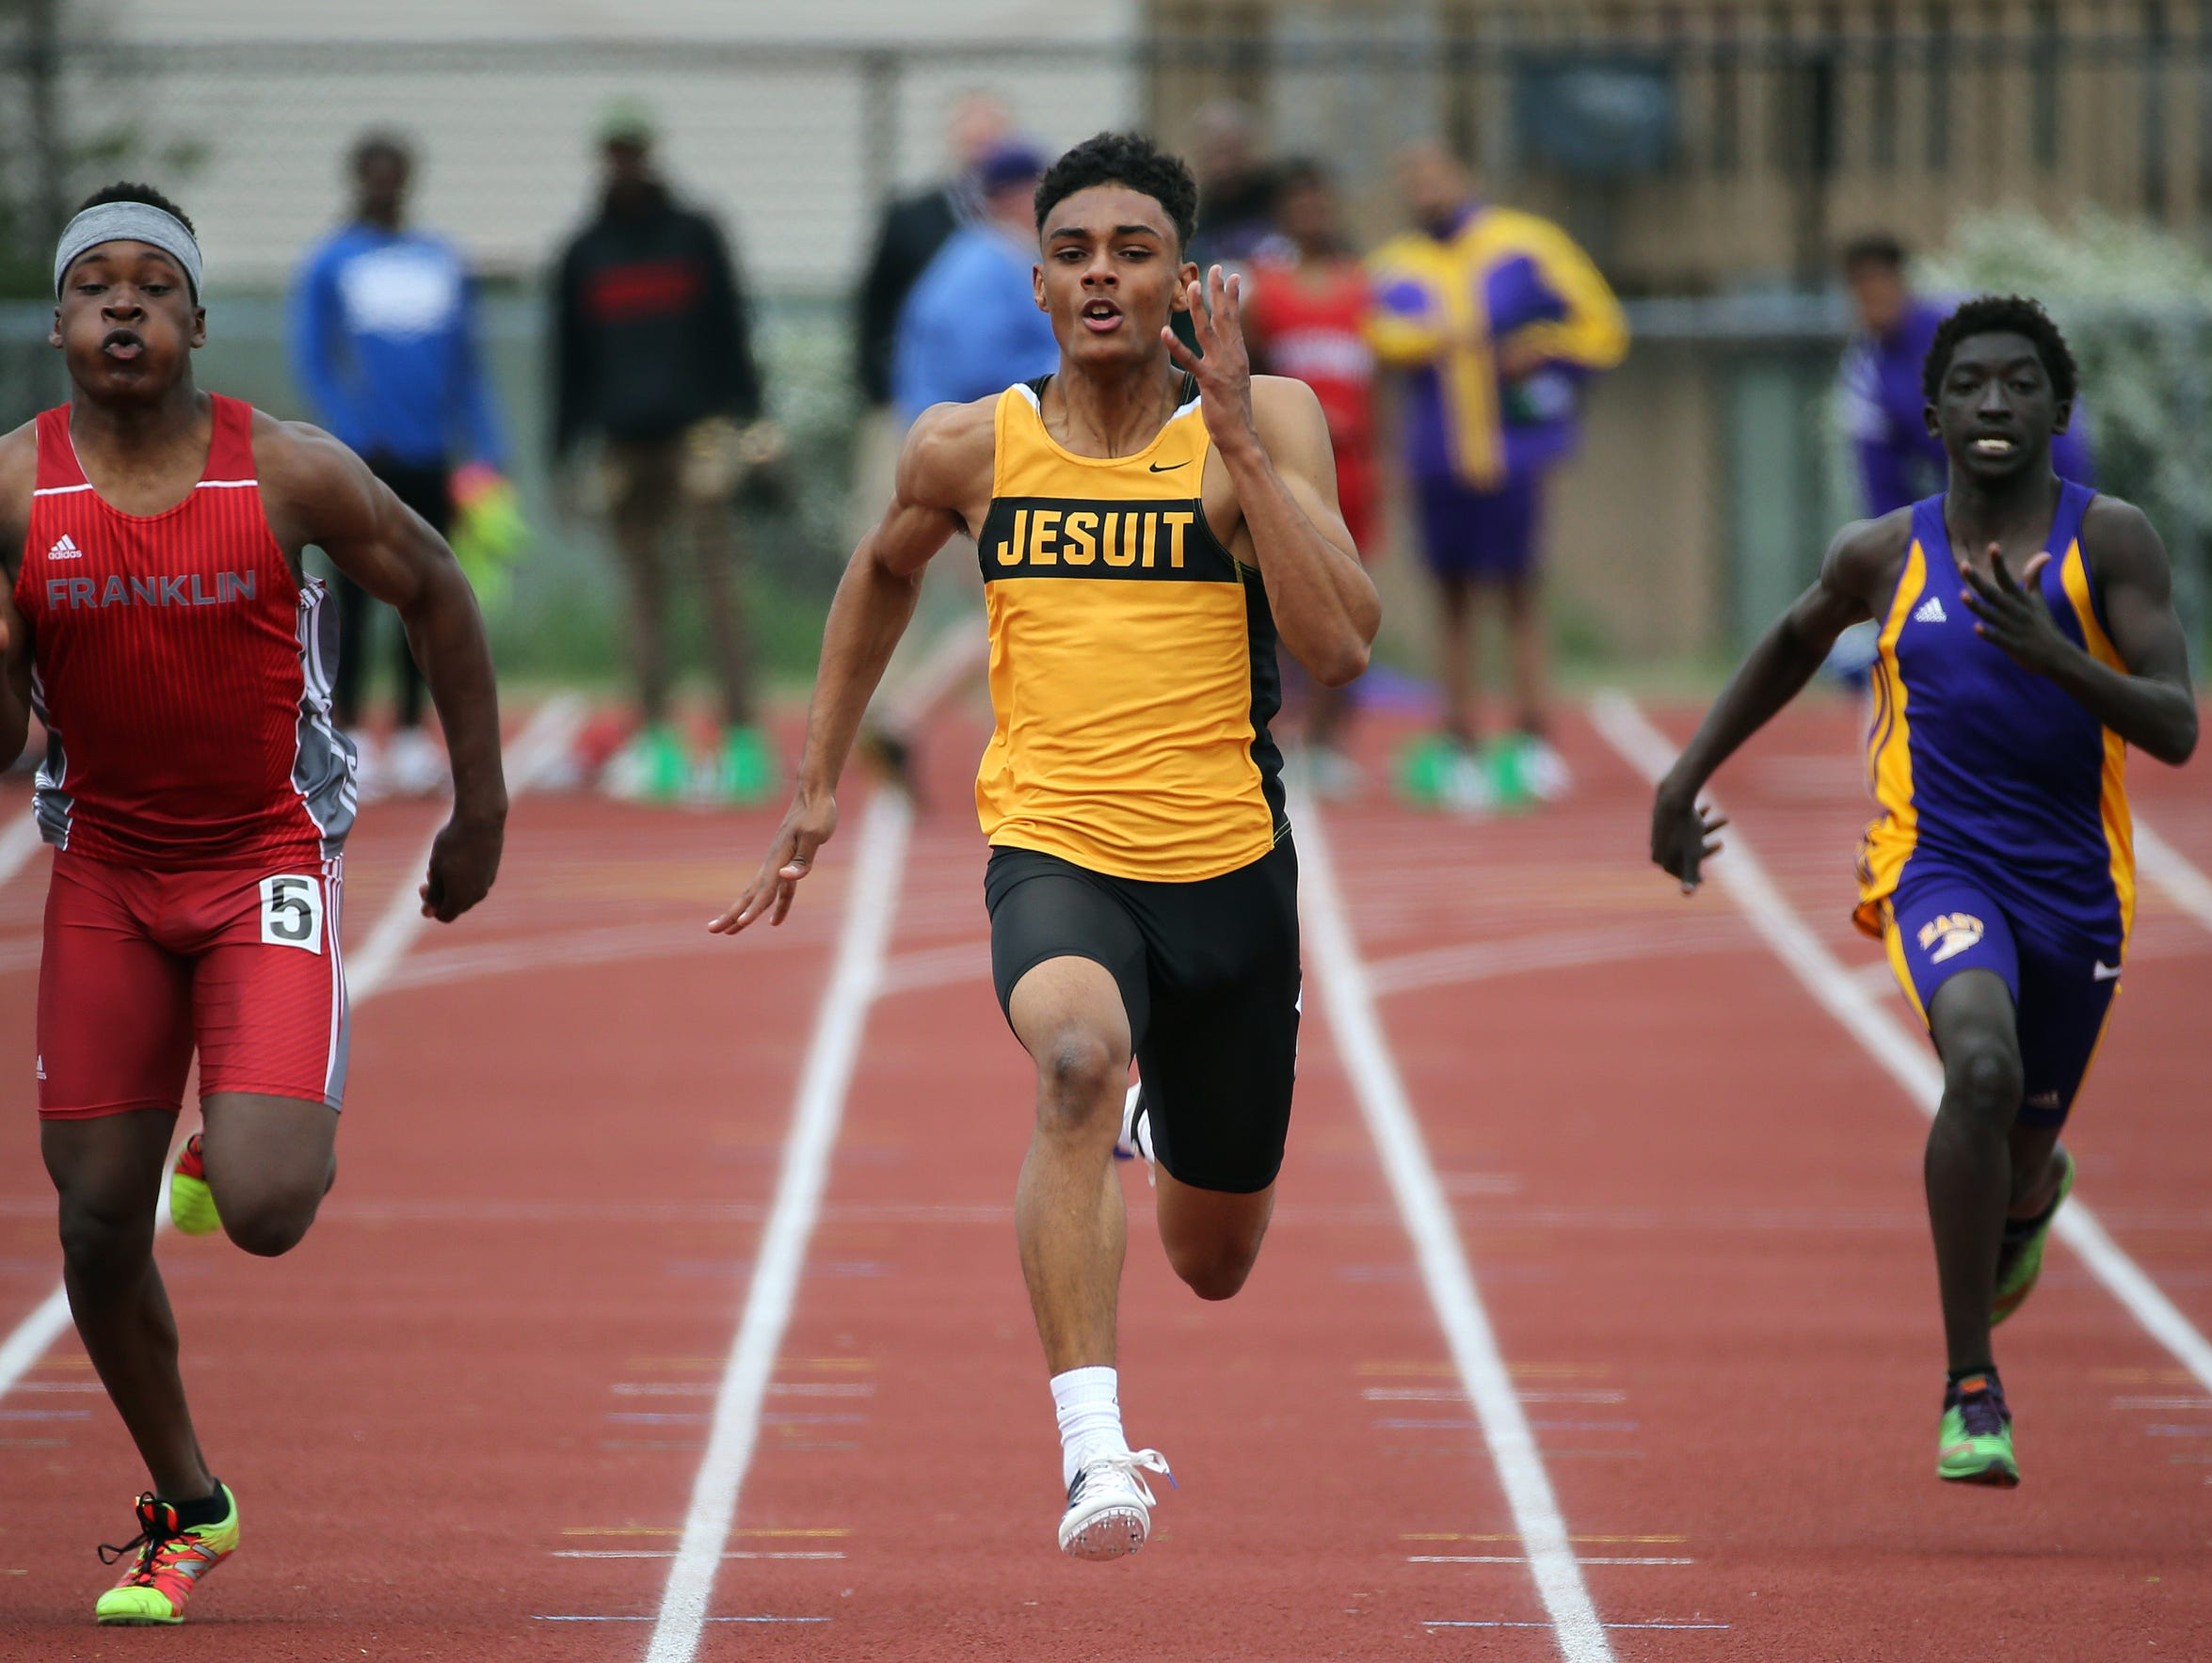 McQuaid's Noah Williams wins the 100 dash with a time